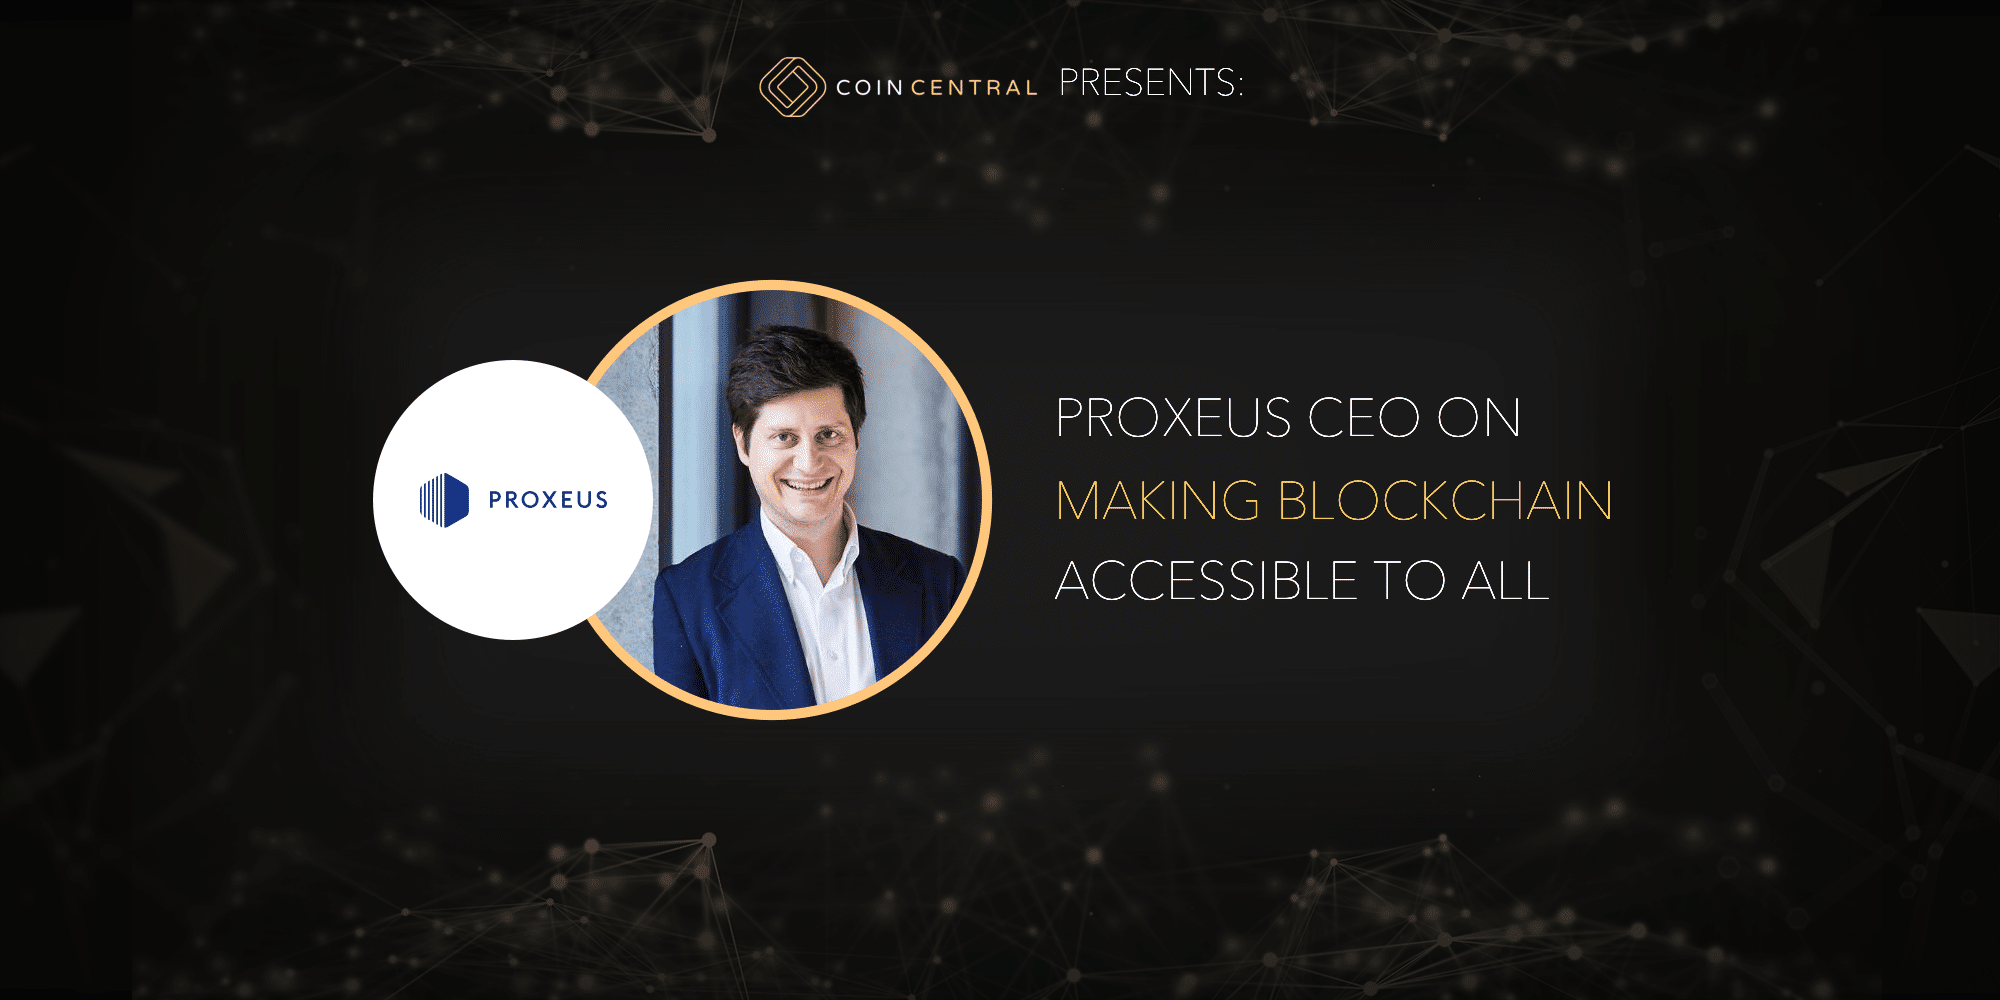 Resultado de imagen para Proxeus CEO Antoine Verdon on Making Blockchain Accessible to All